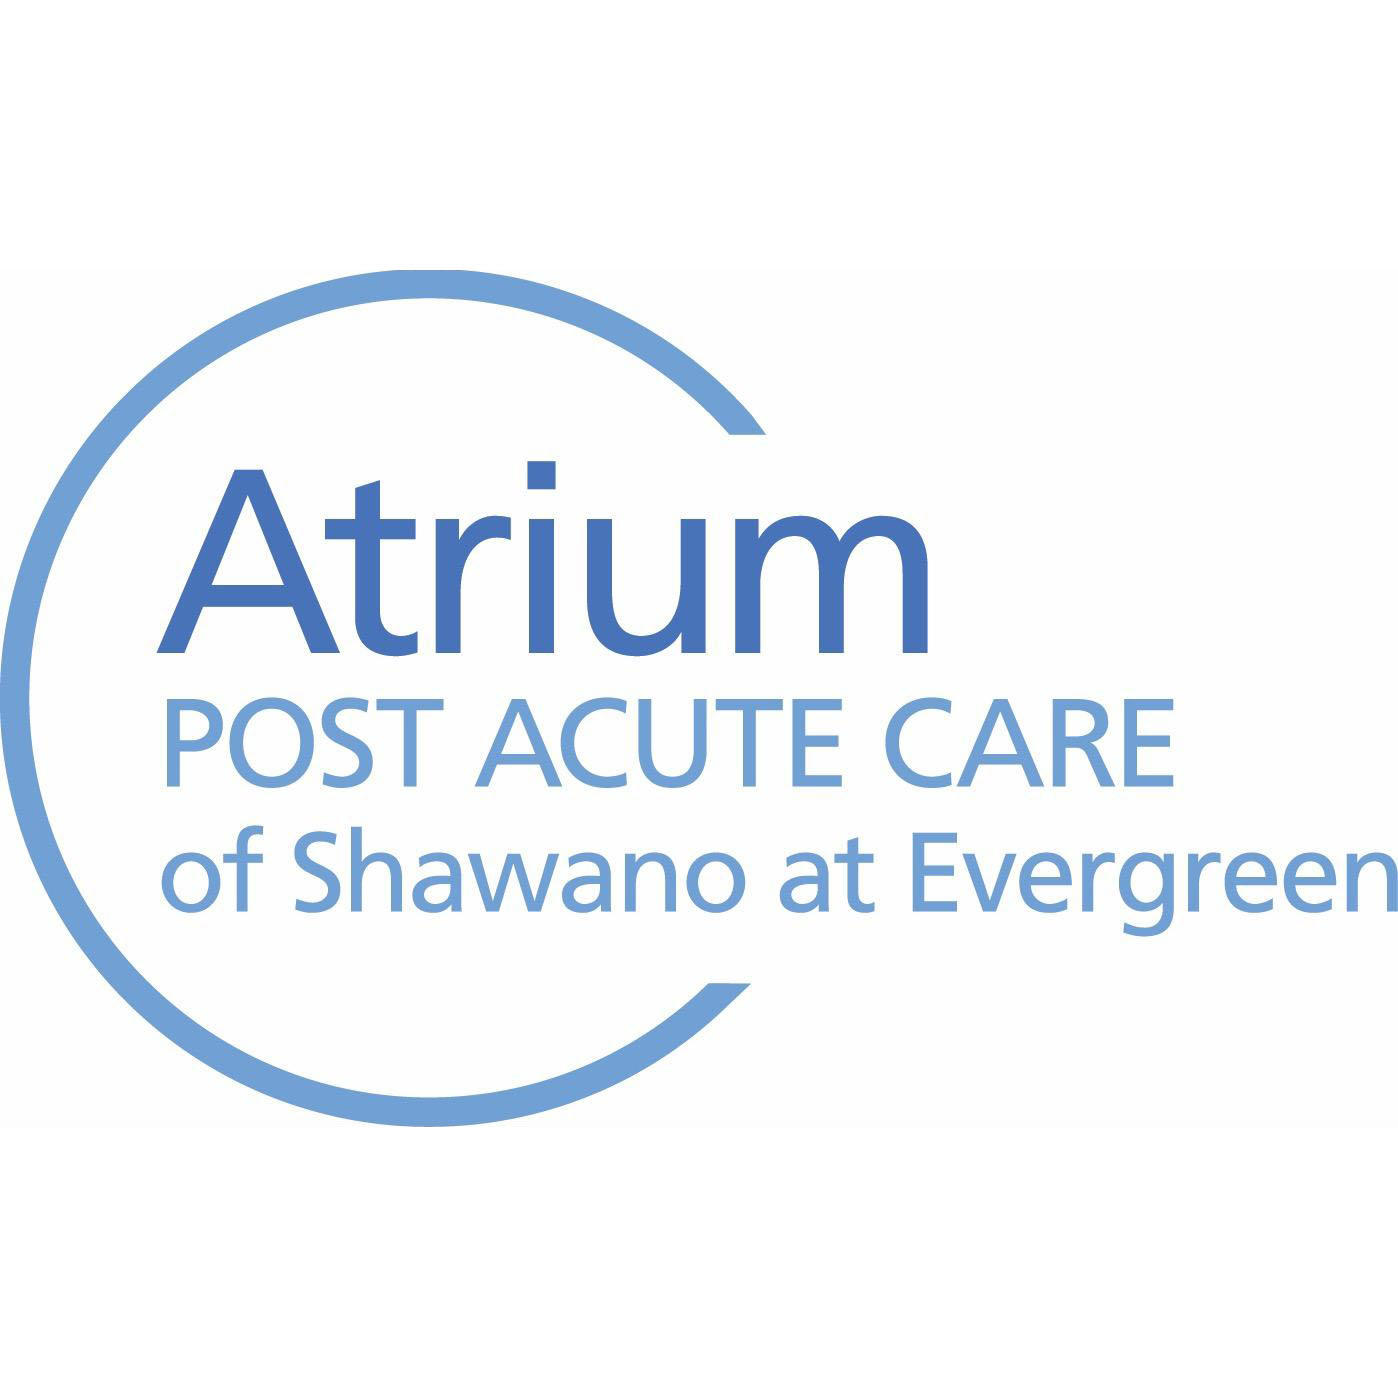 Atrium Post Acute Care of Shawano at Evergreen